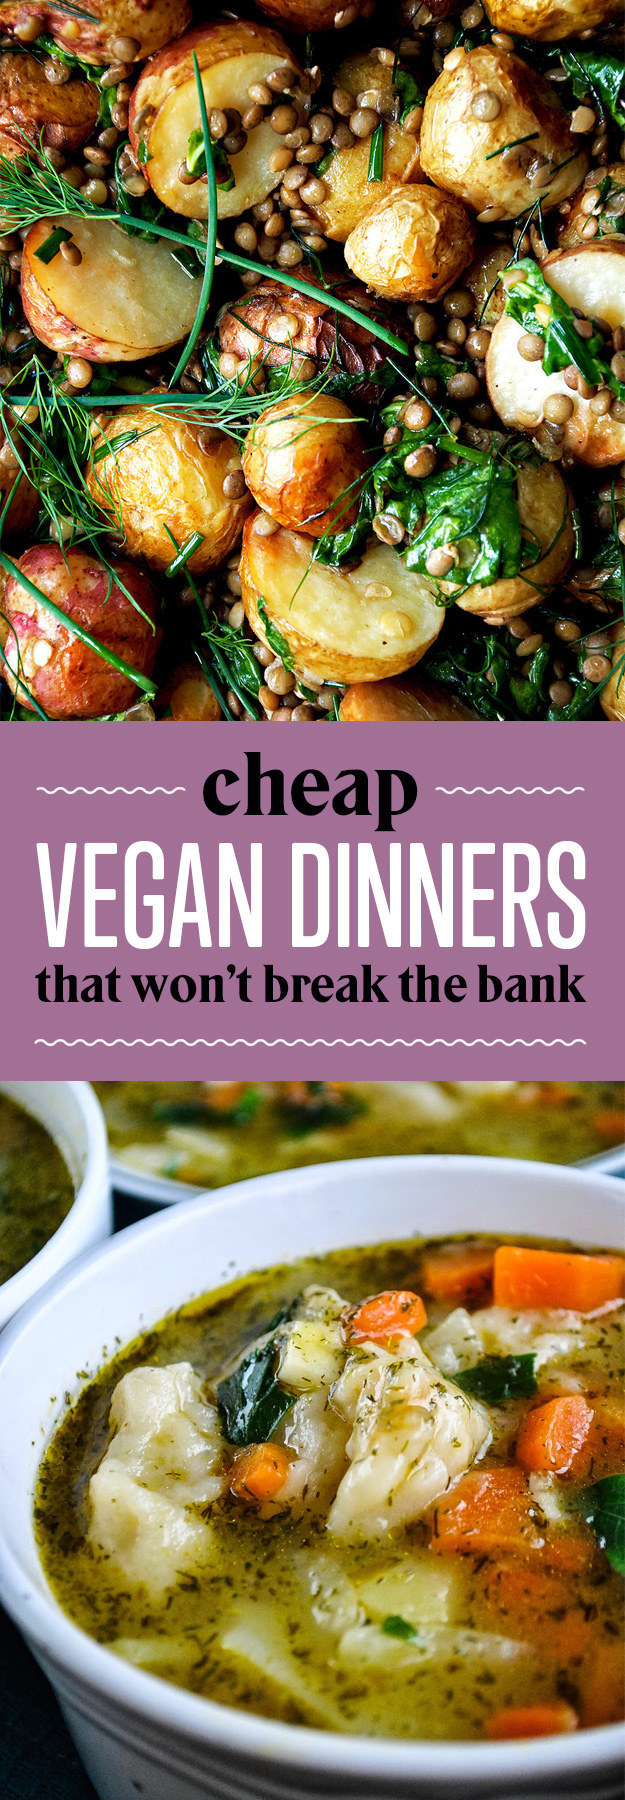 Here's Every Vegetarian And Vegan Recipe You Could Ever Need